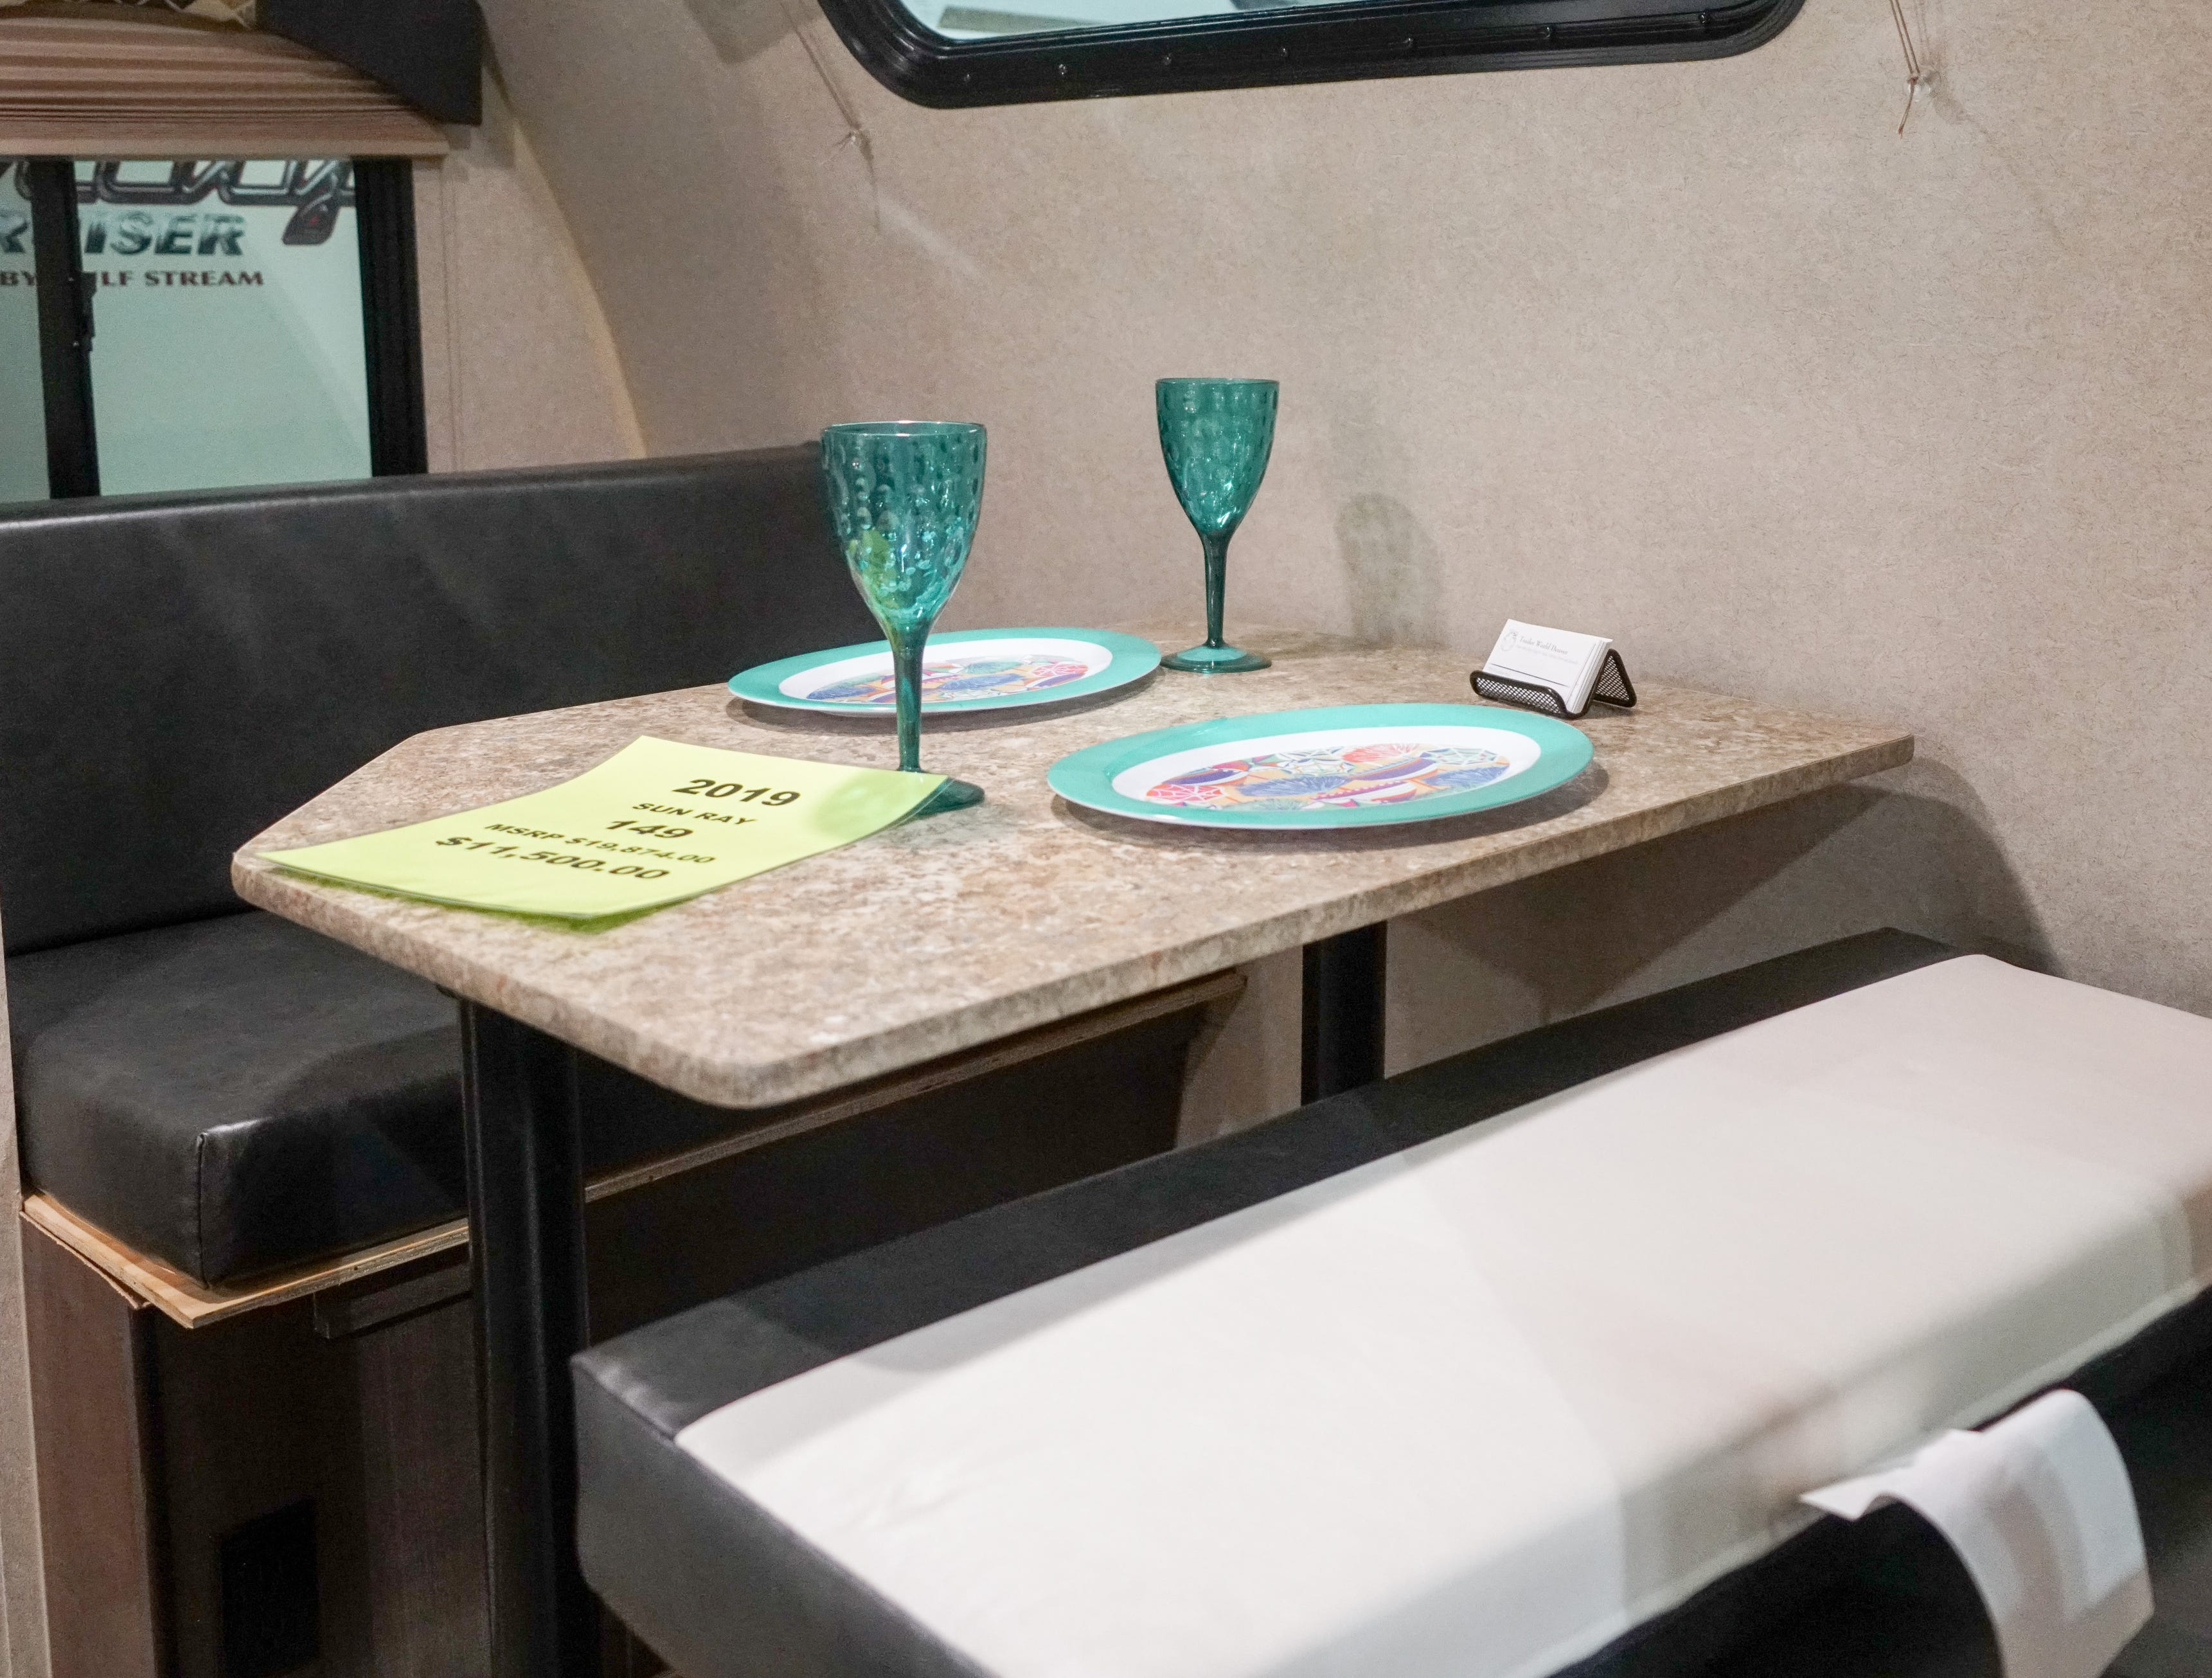 Many RV enthusiasts say they love being able to travel with all the comforts of home.